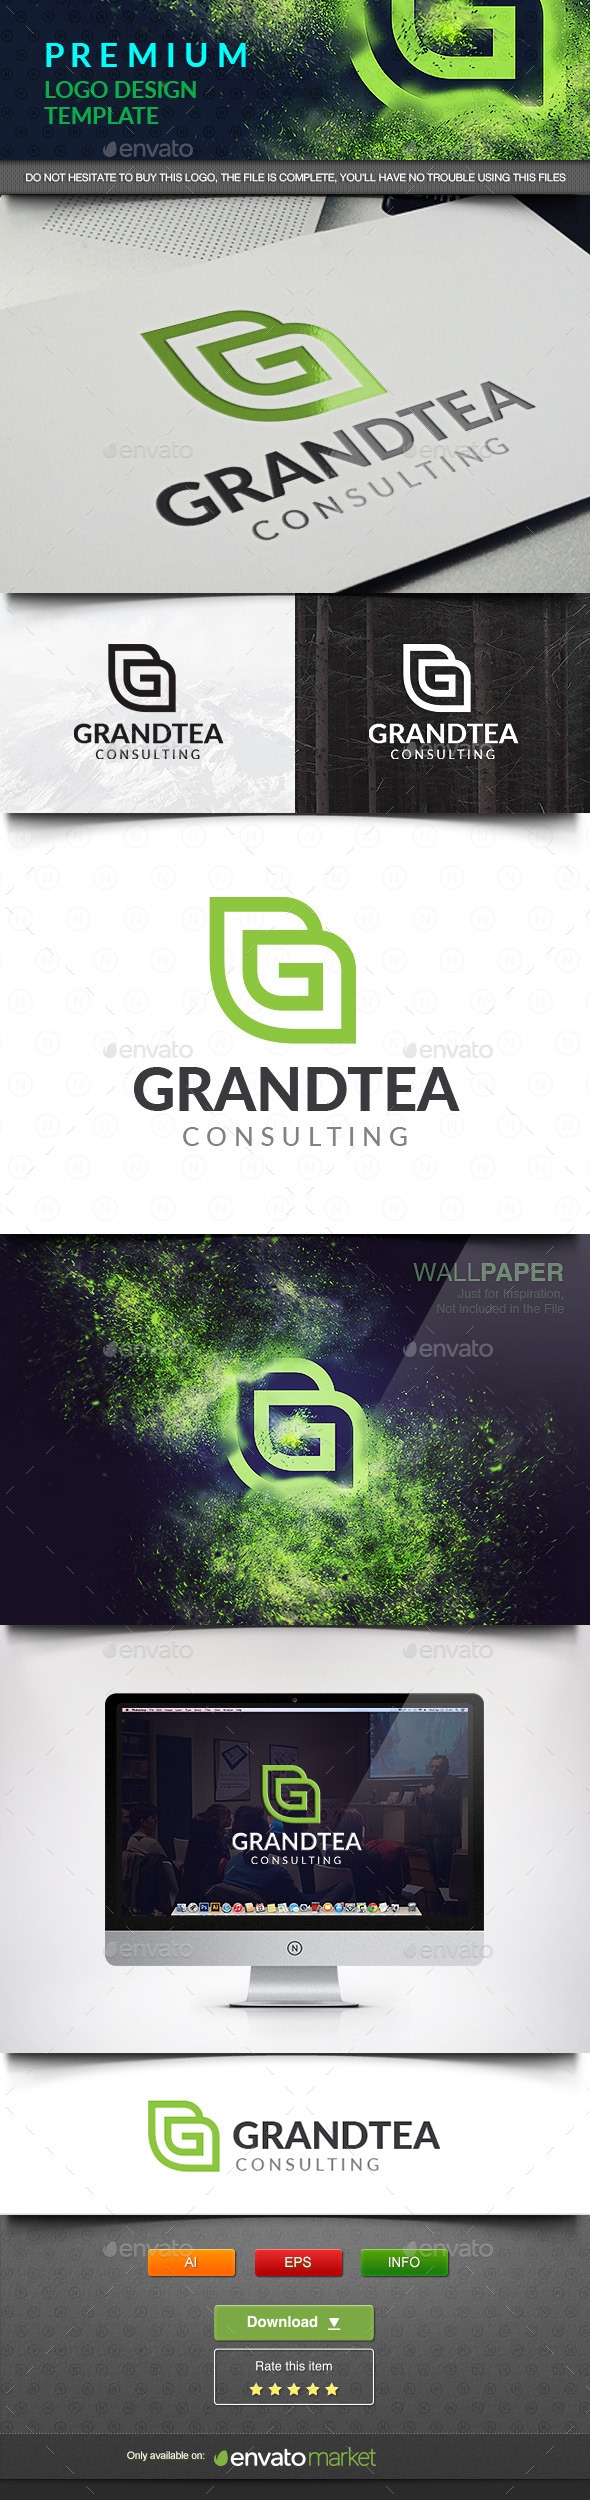 Grand Tea - Abstract Letter G - Vector Abstract